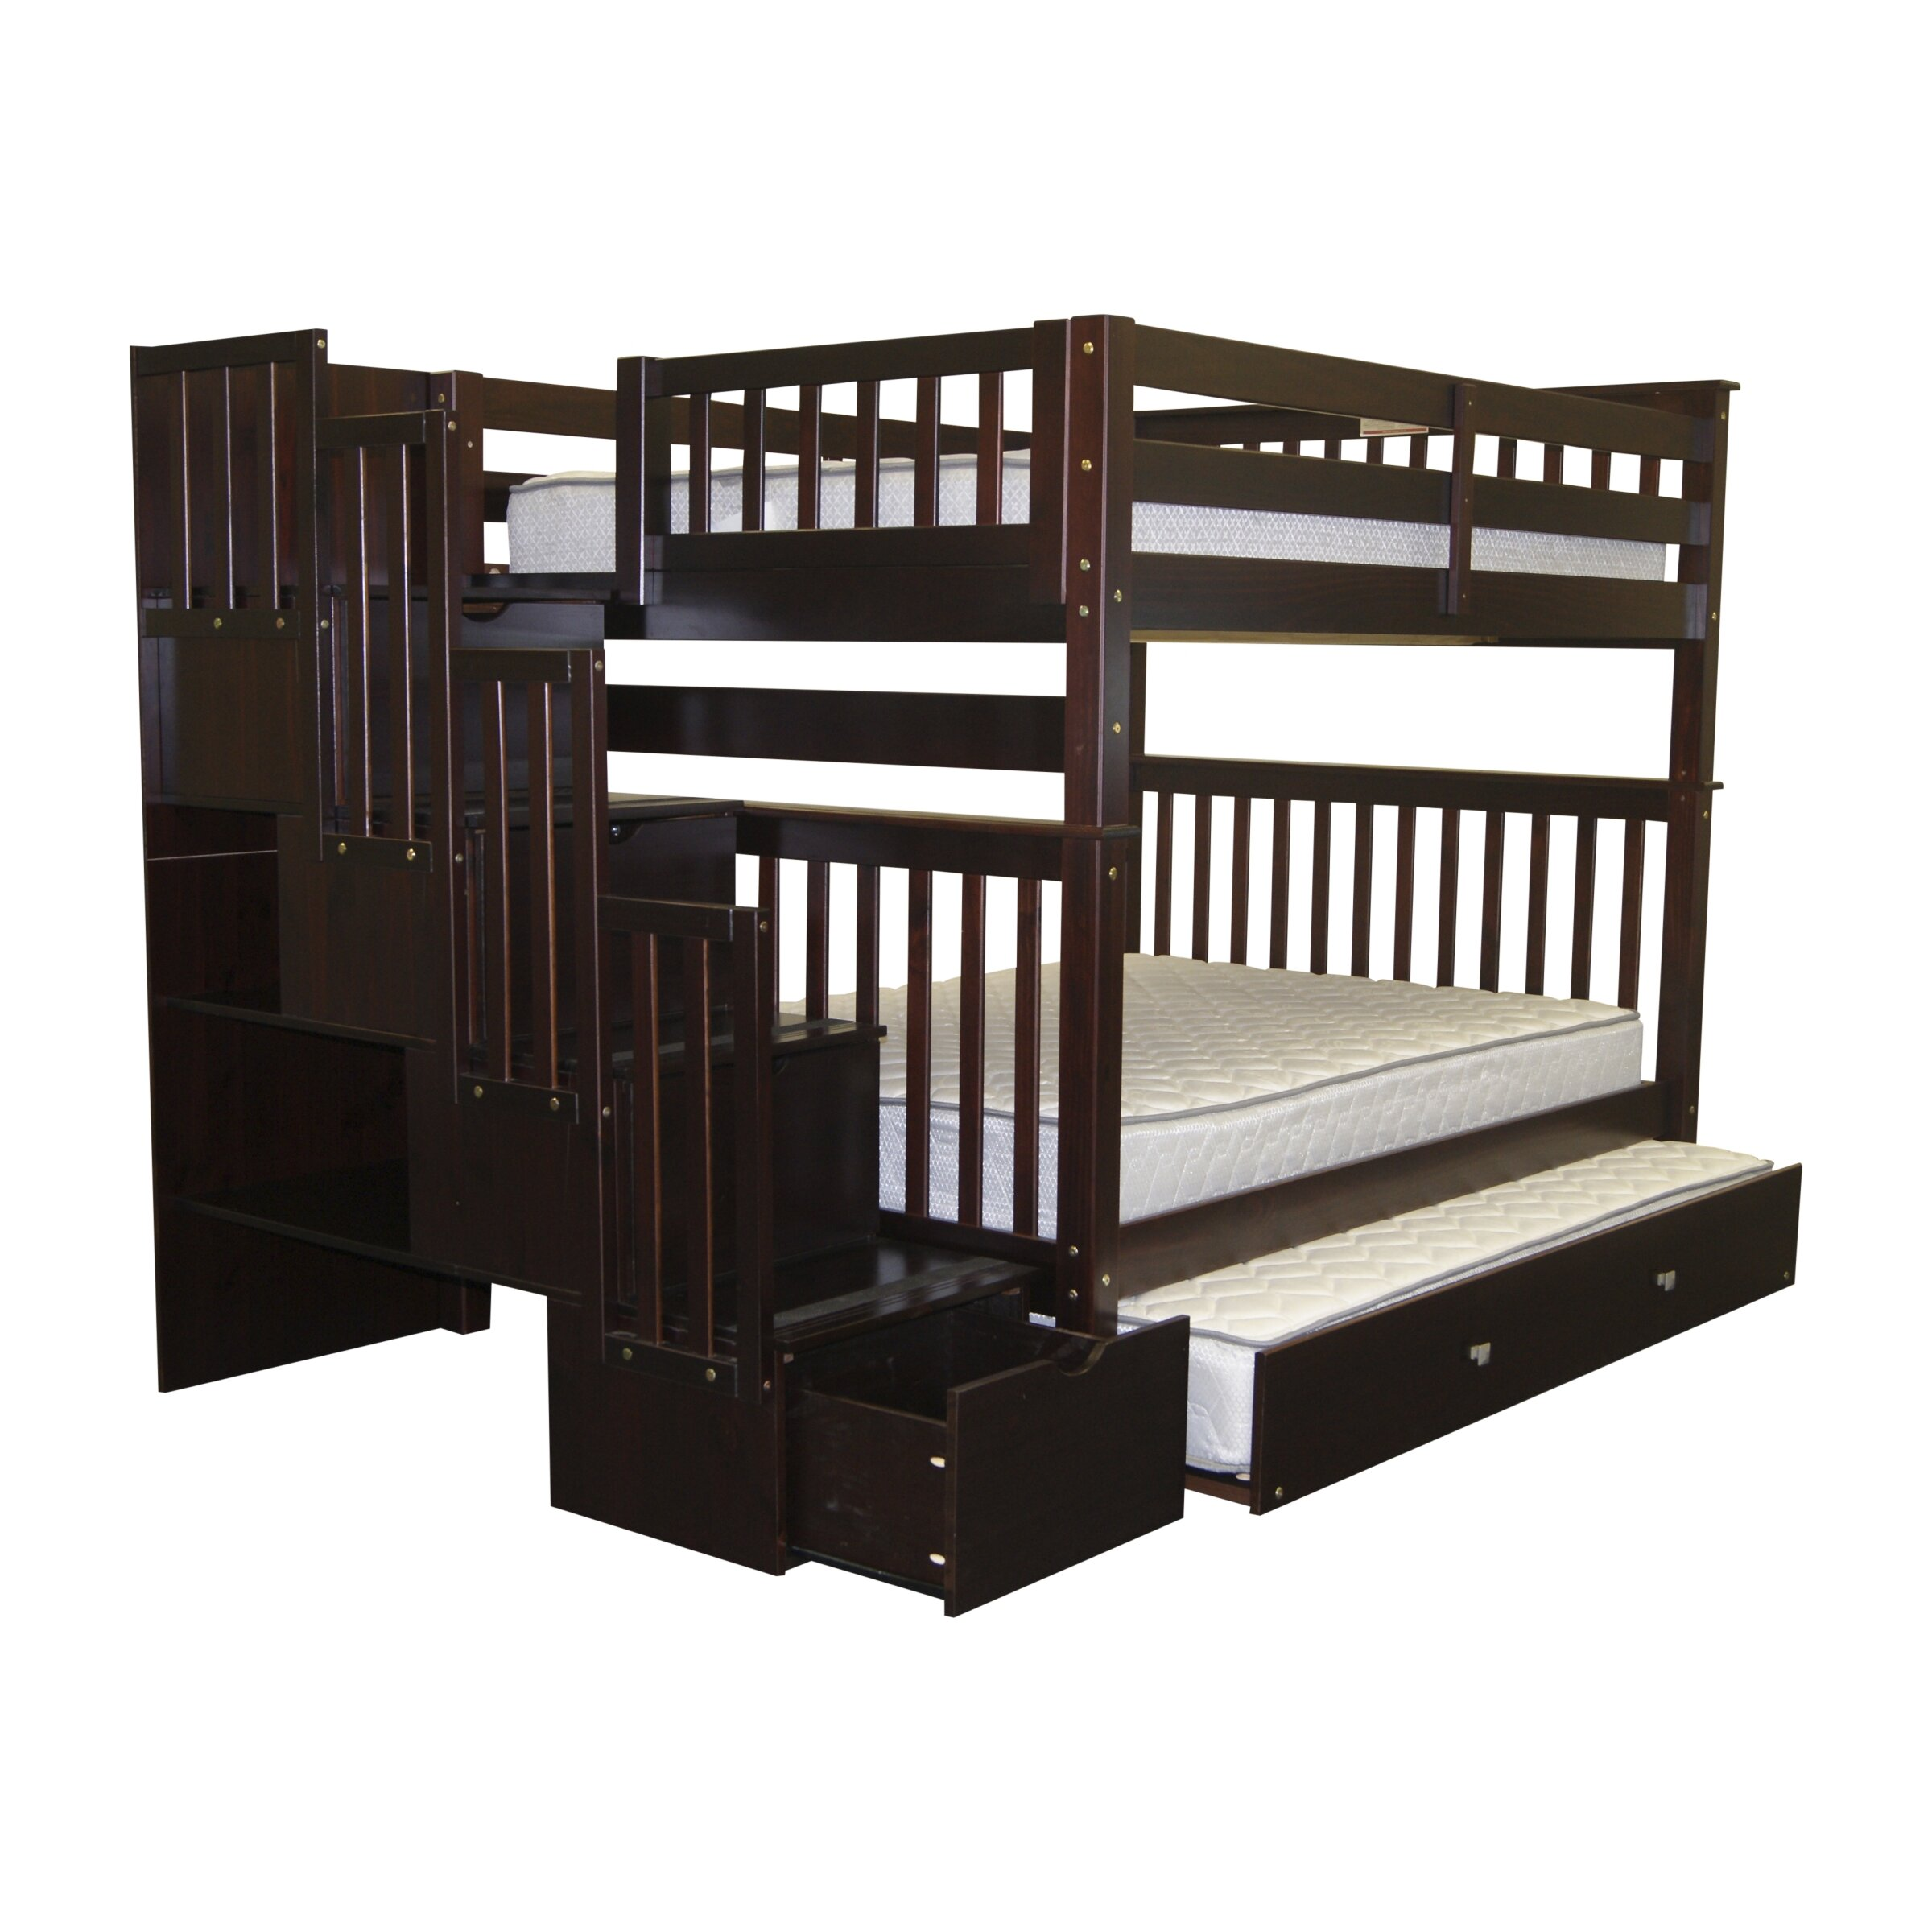 bedz king full over full bunk bed with full trundle. Black Bedroom Furniture Sets. Home Design Ideas